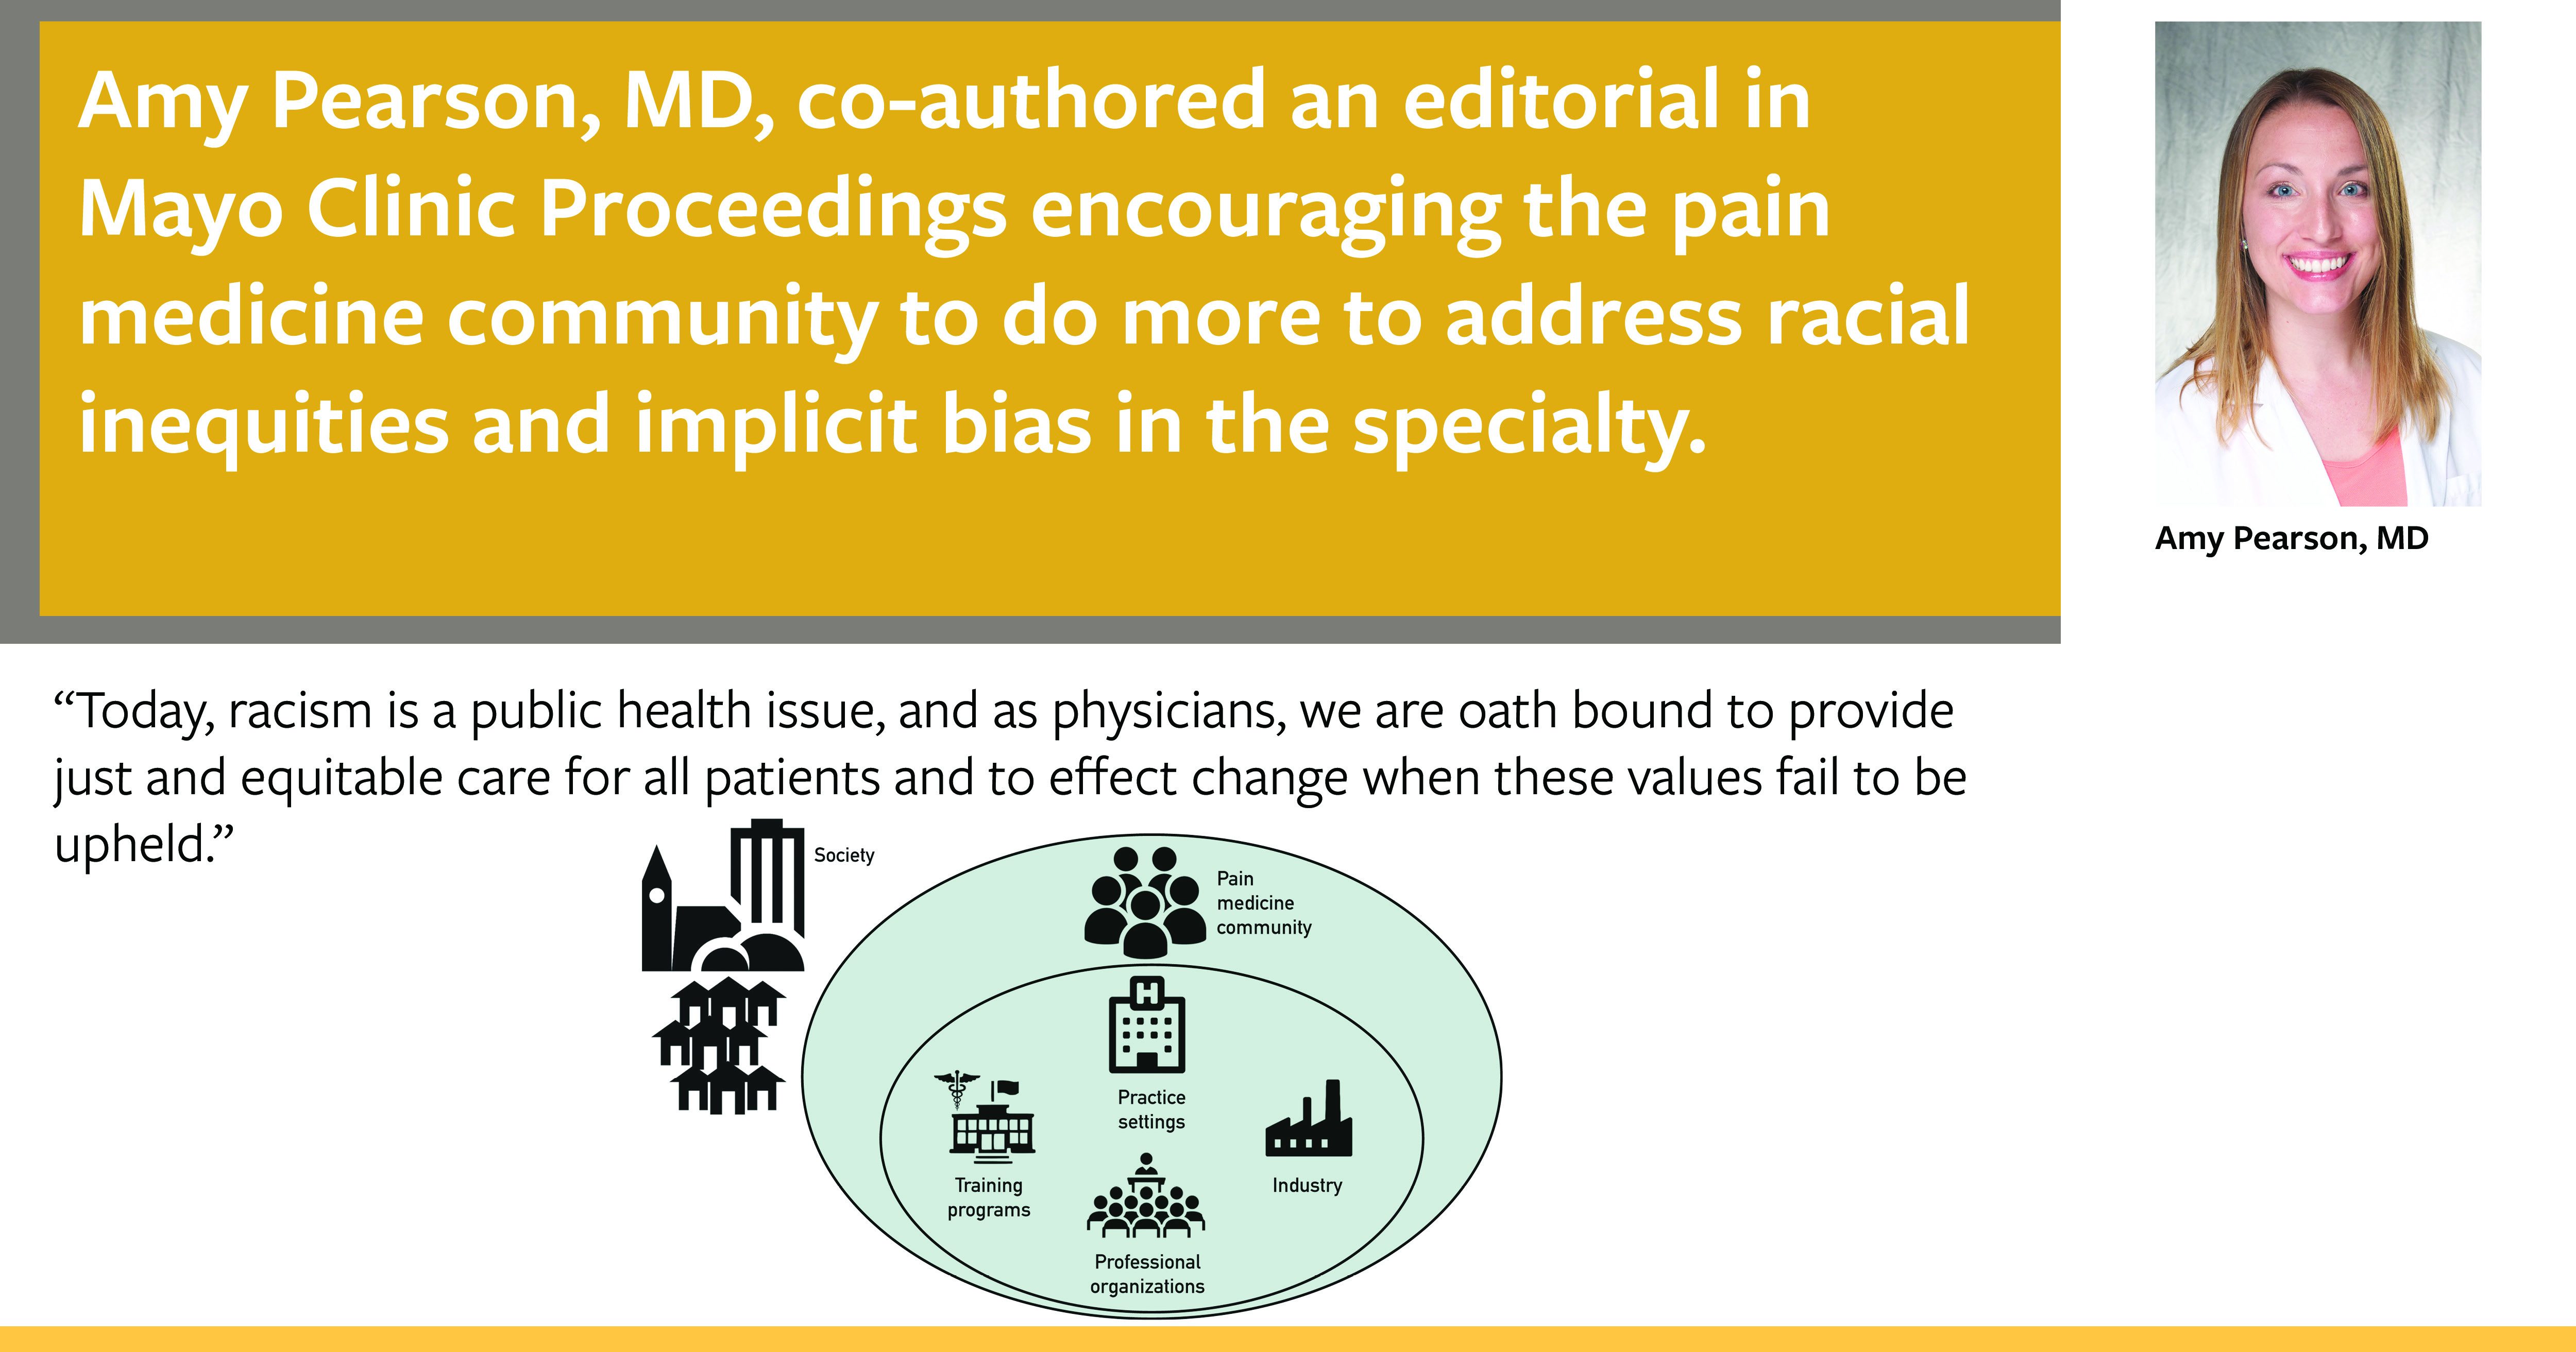 Amy Pearson, MD, co-authored an editorial urging pain medicine practitioners to do more to combat racial inequities in their specialty